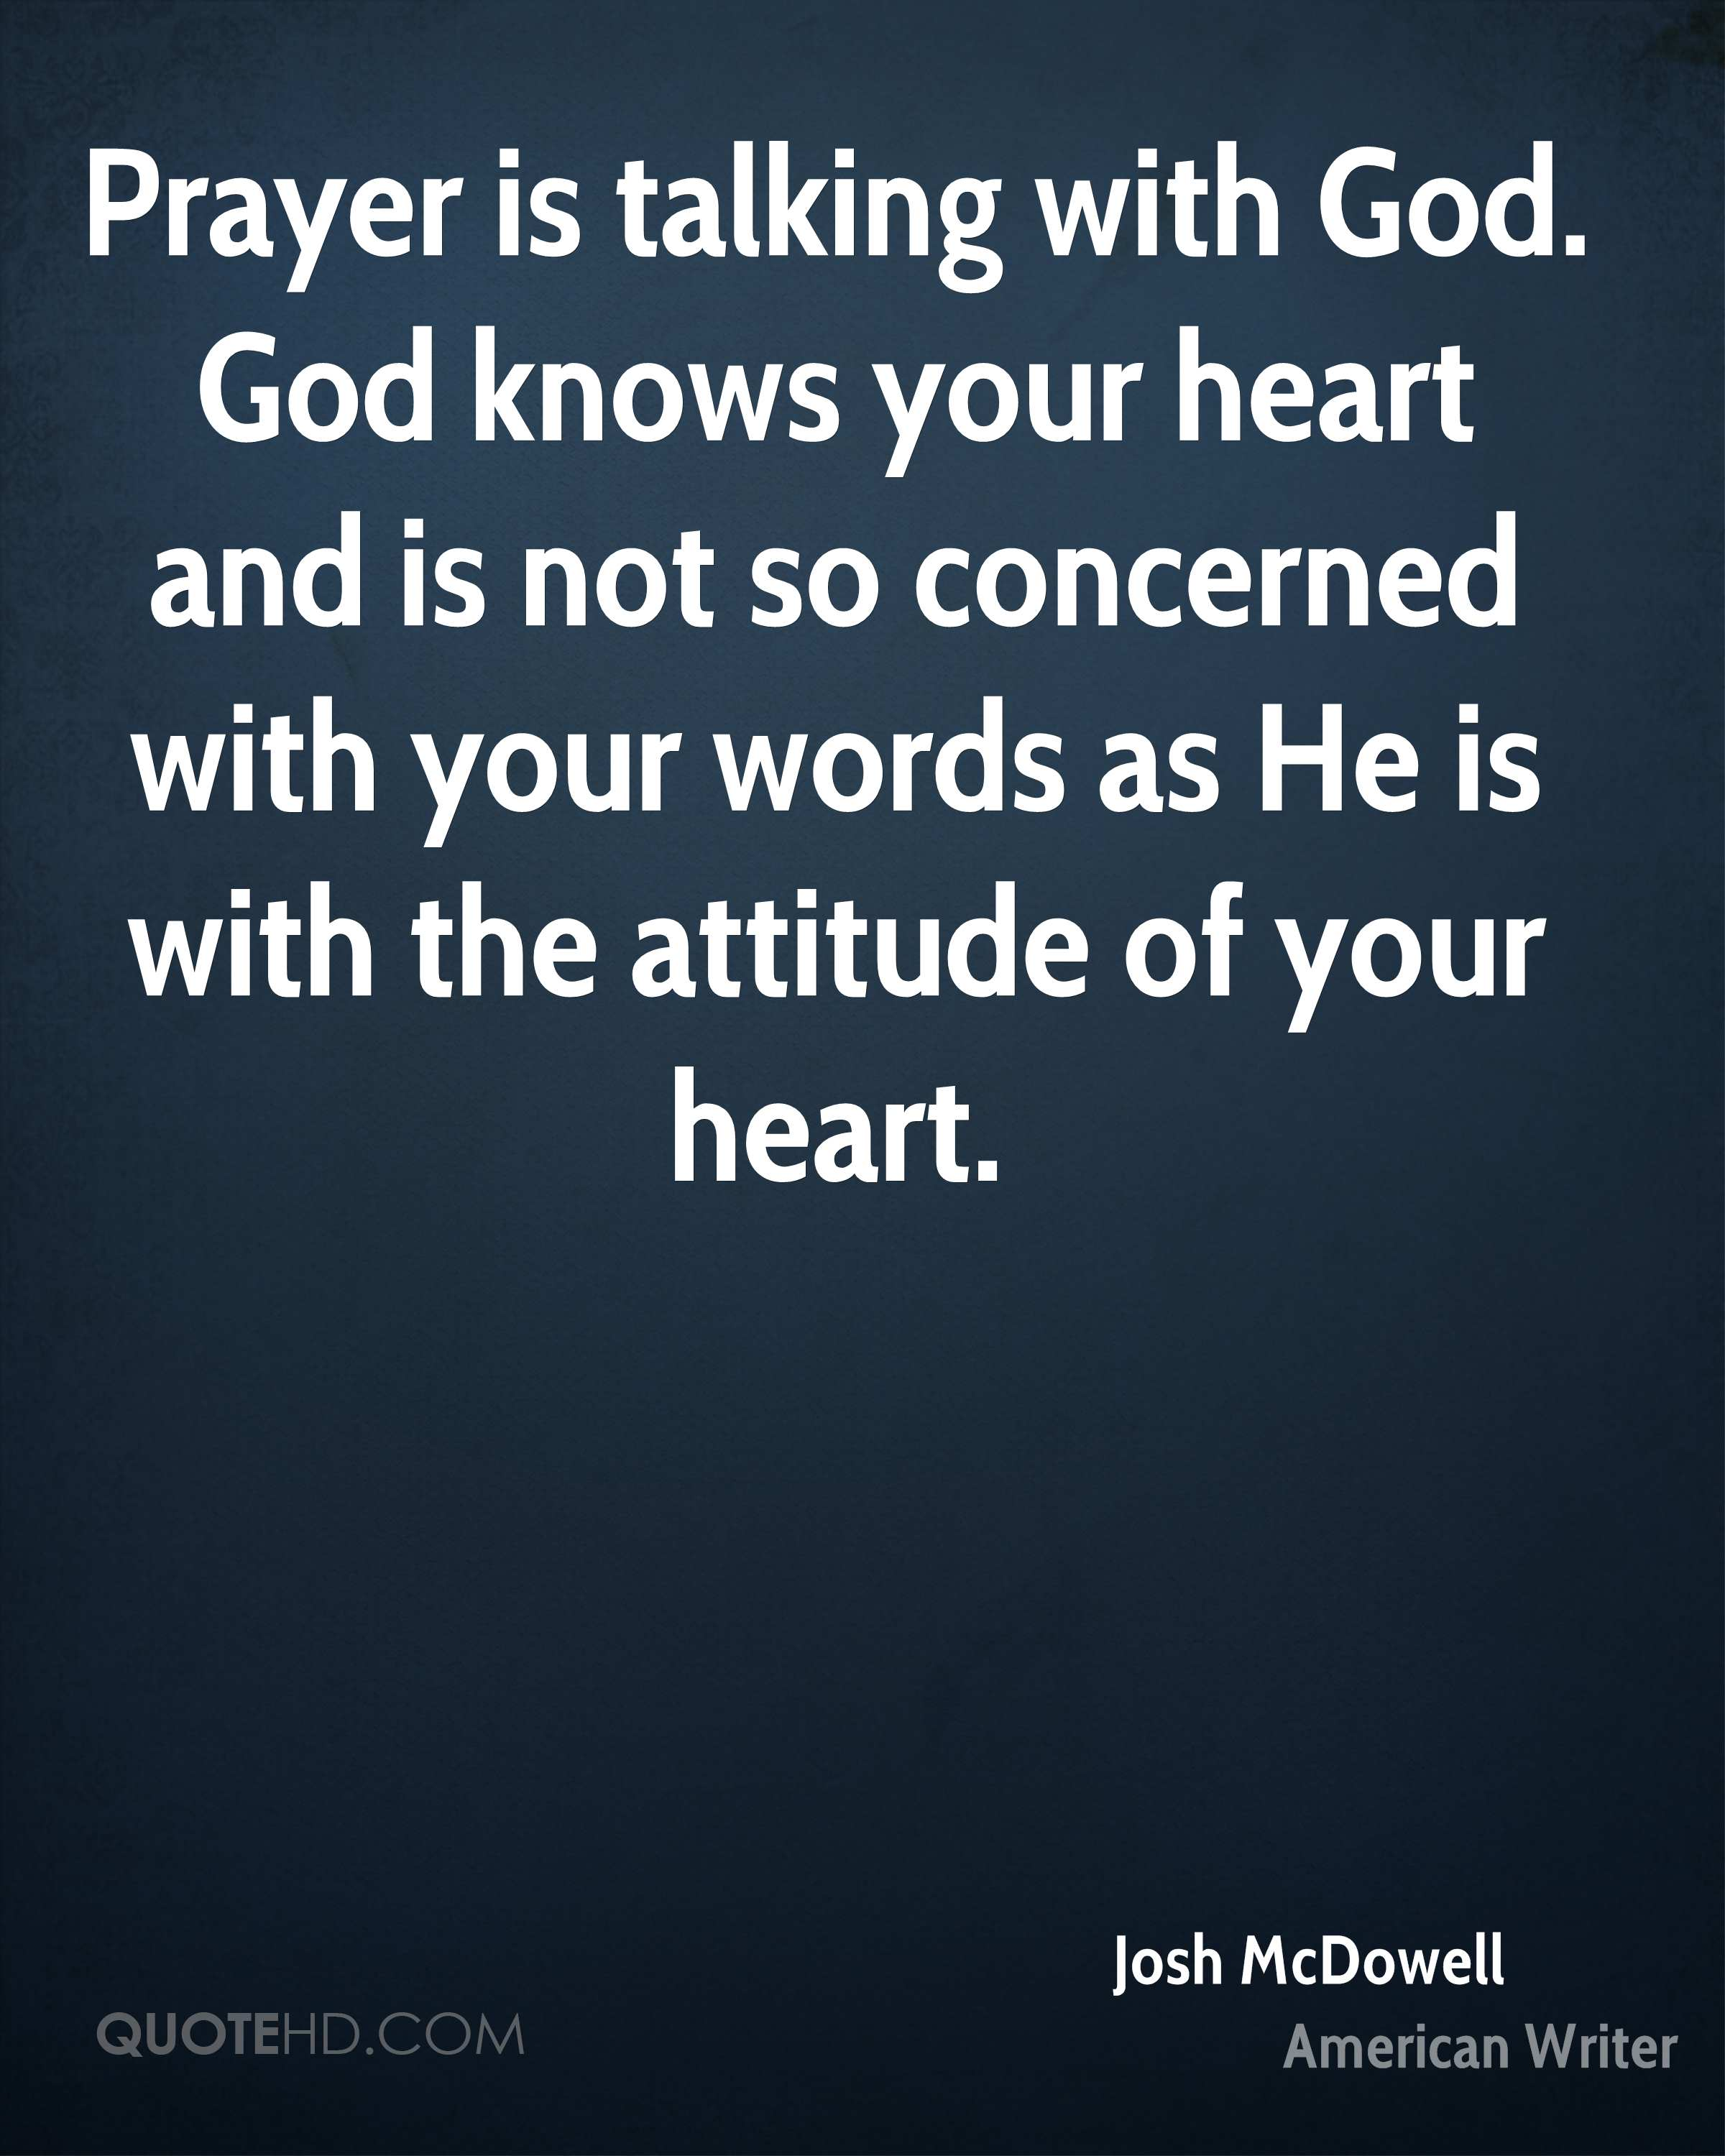 Prayer is talking with God. God knows your heart and is not so concerned with your words as He is with the attitude of your heart.